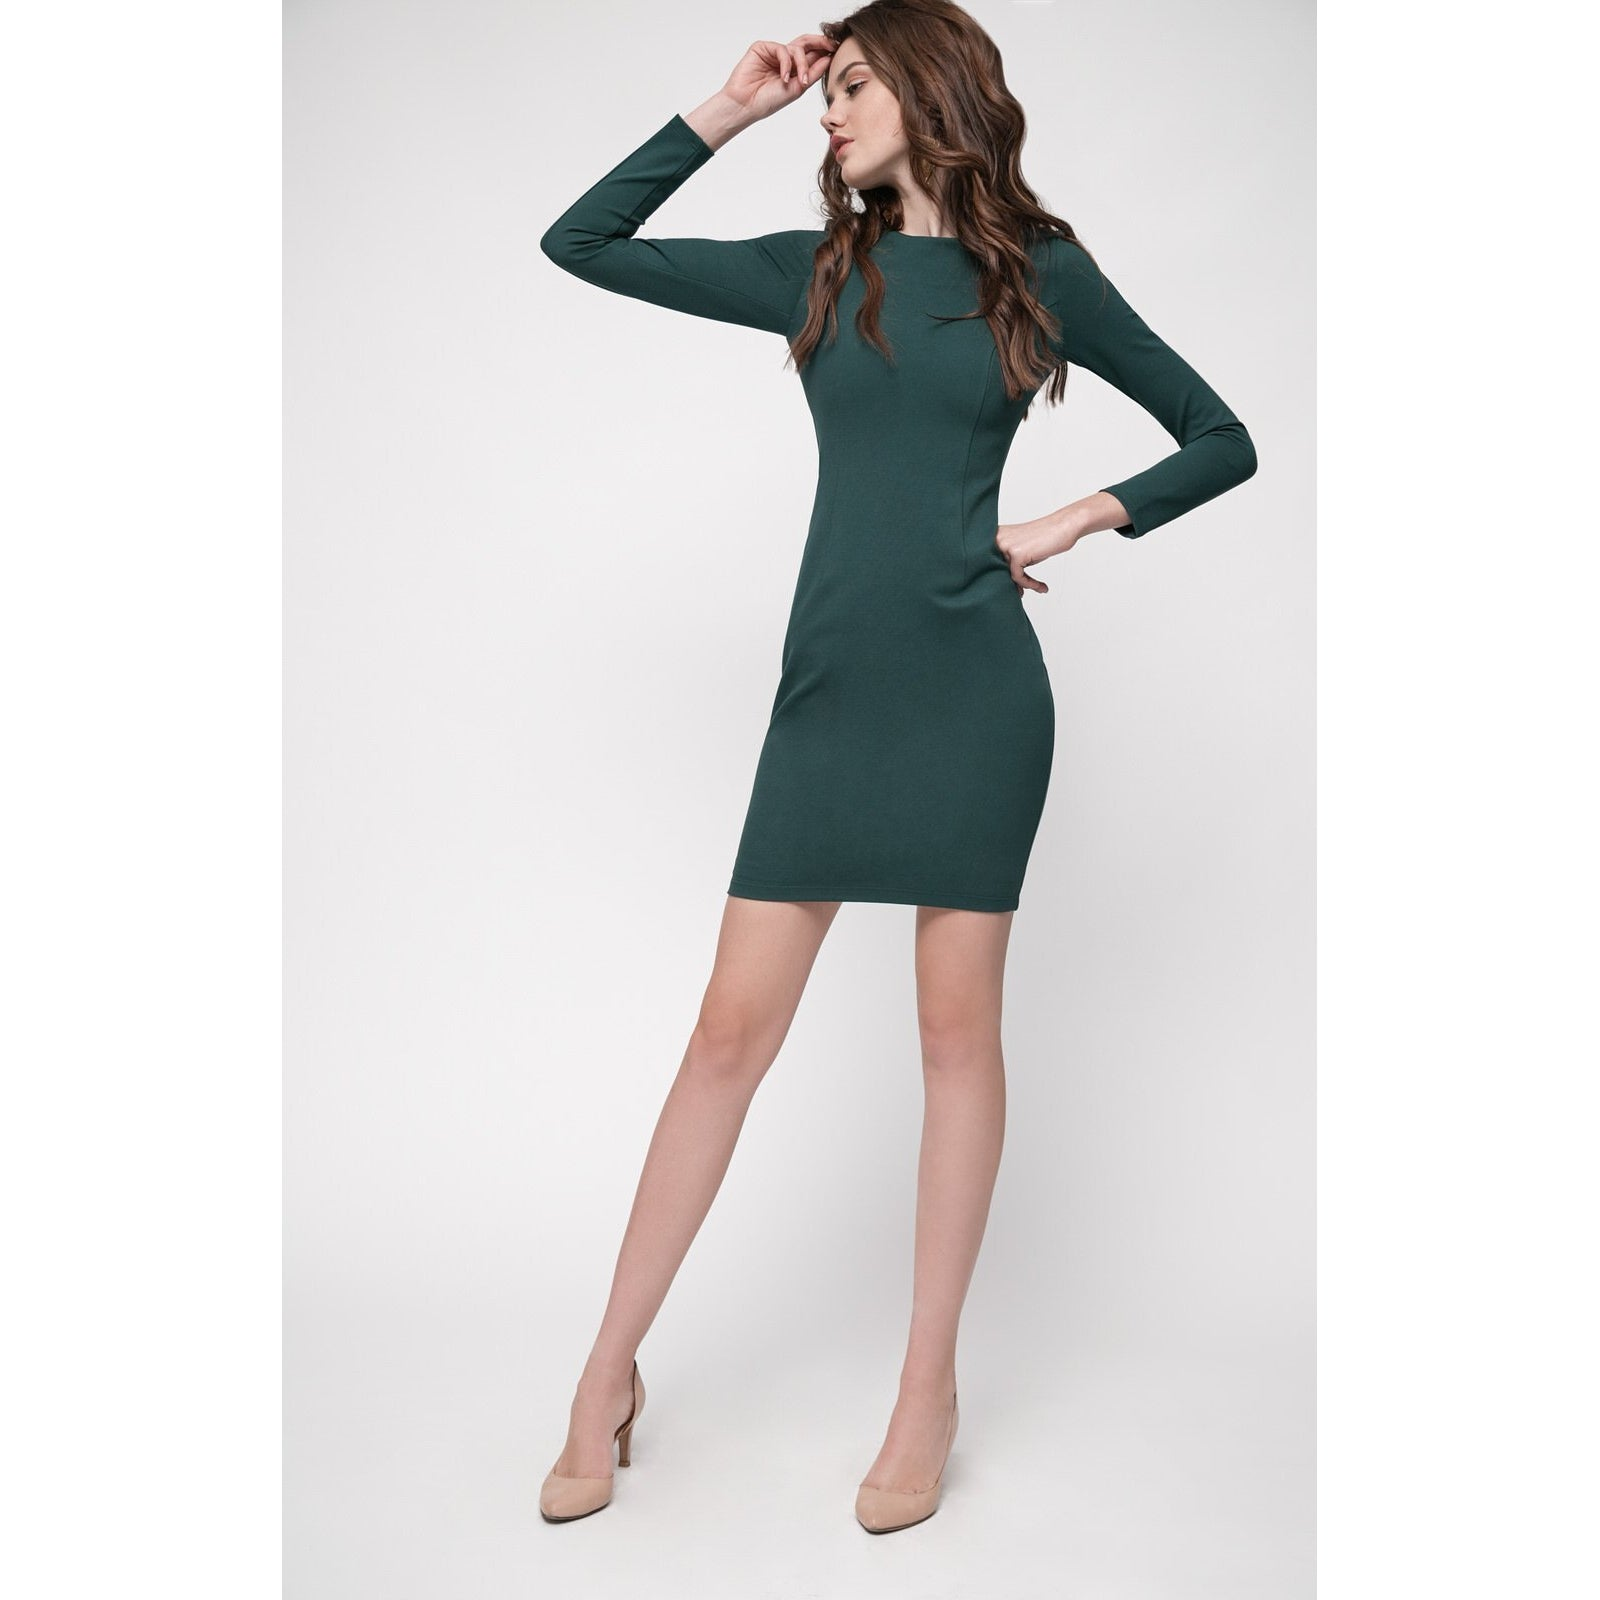 Green Mini Bodycon Dress Never Let Me Go-OVER THE SEA-HOUSE of BOTTA